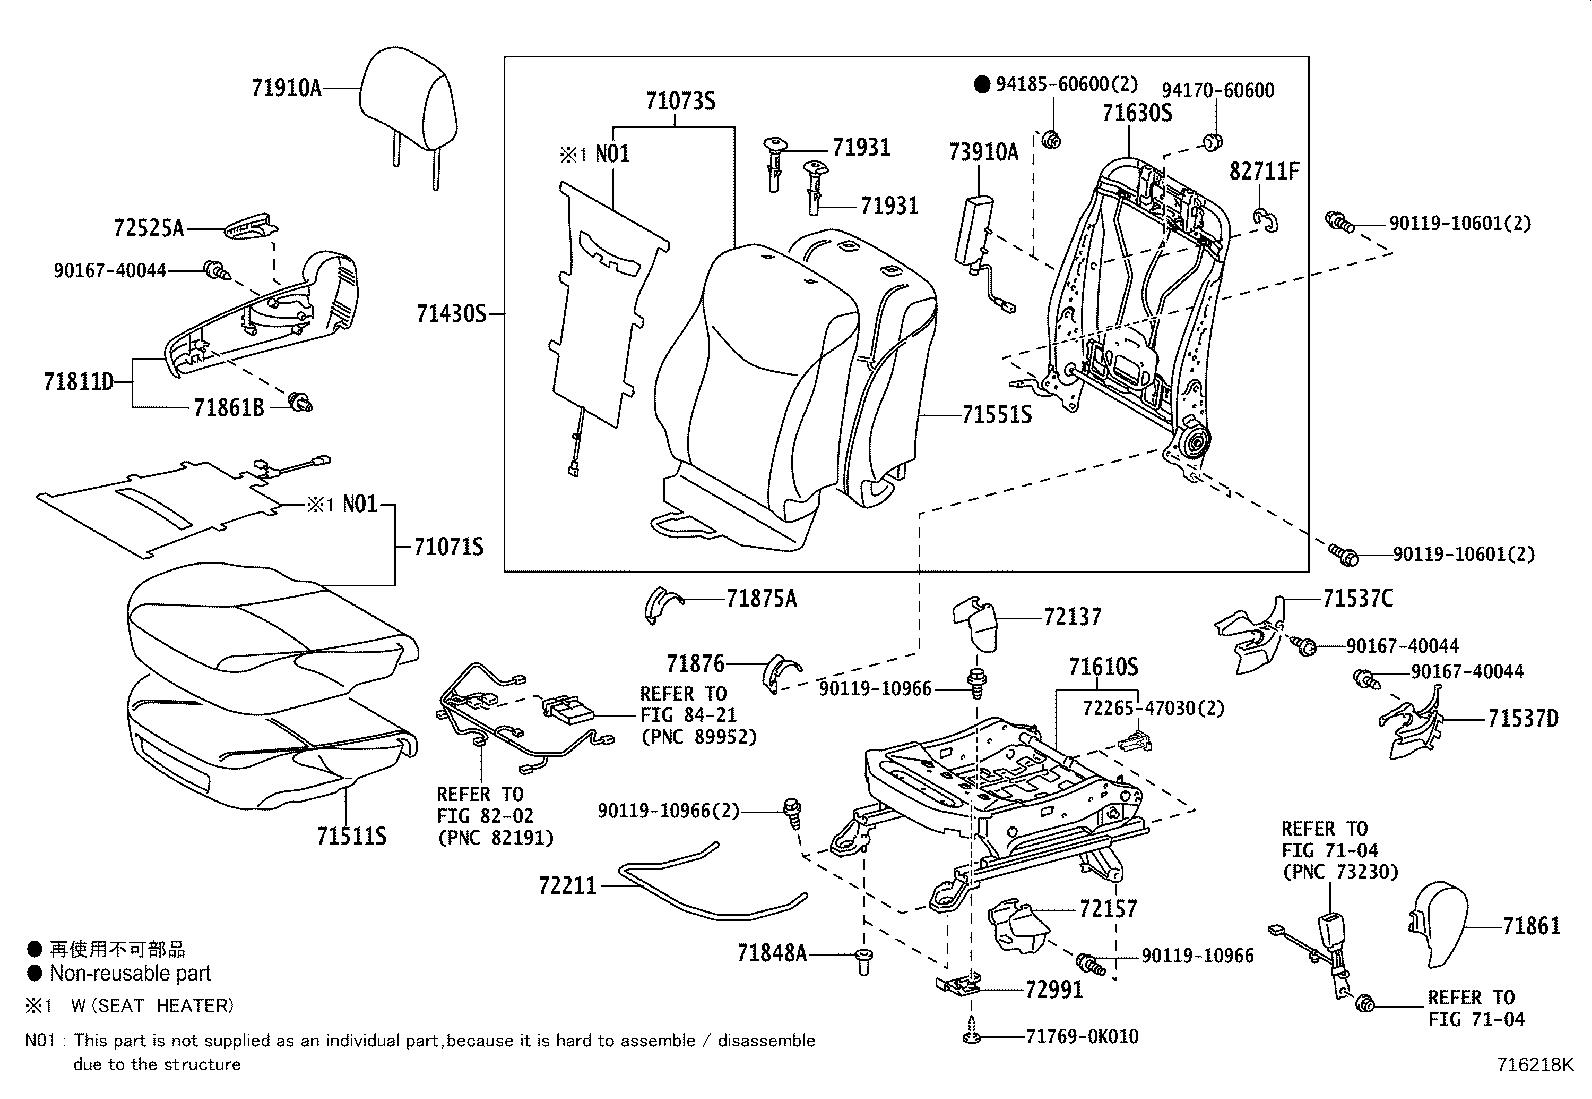 Diagram FRONT SEAT & SEAT TRACK for your 2002 Toyota Prius